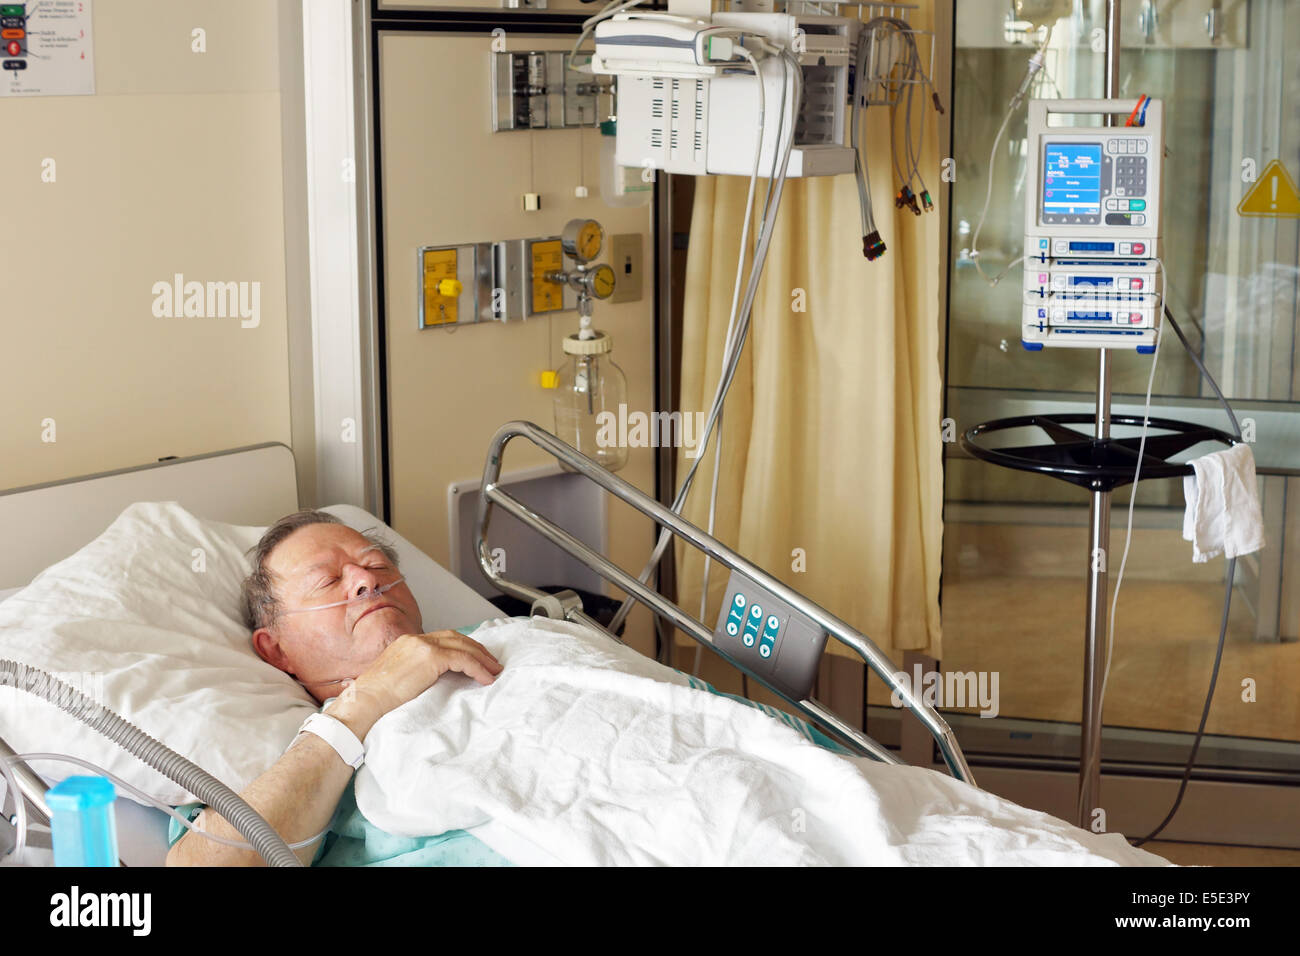 Lots Of People In Hospital Bed On A Drip